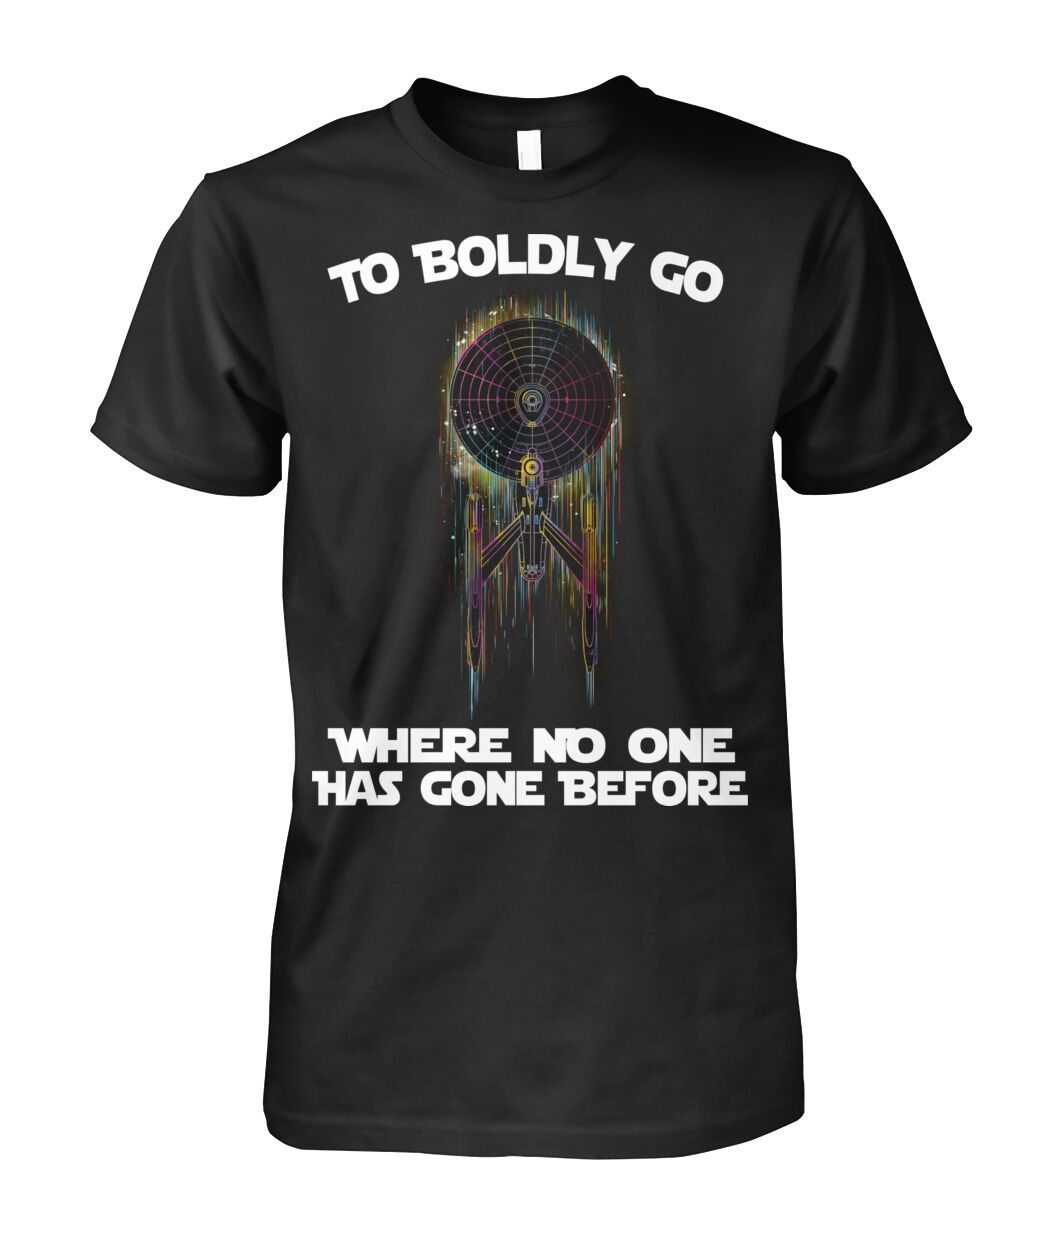 star trek to boldly go where no one has gone before shirt 1